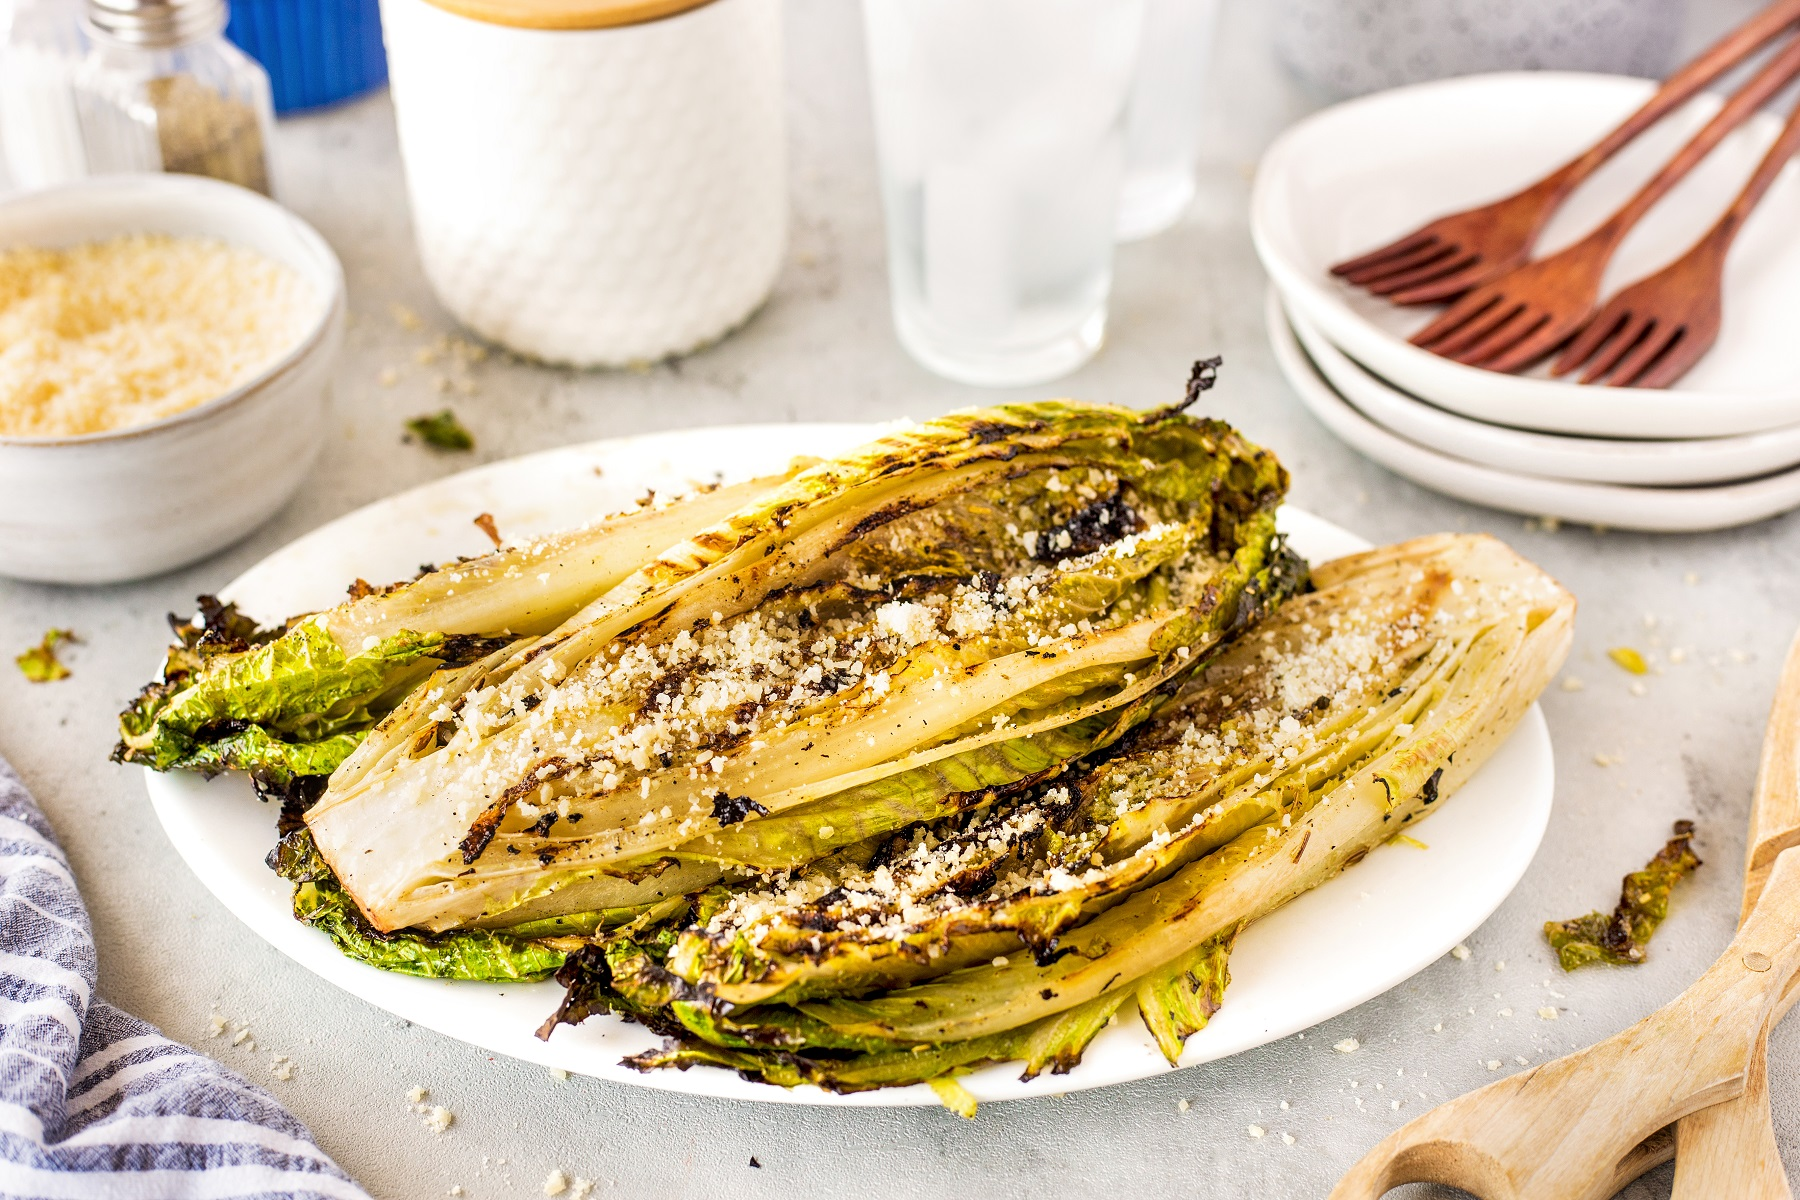 Grilled romaine heart halves on a white platter with grated cheese sprinkled on top.